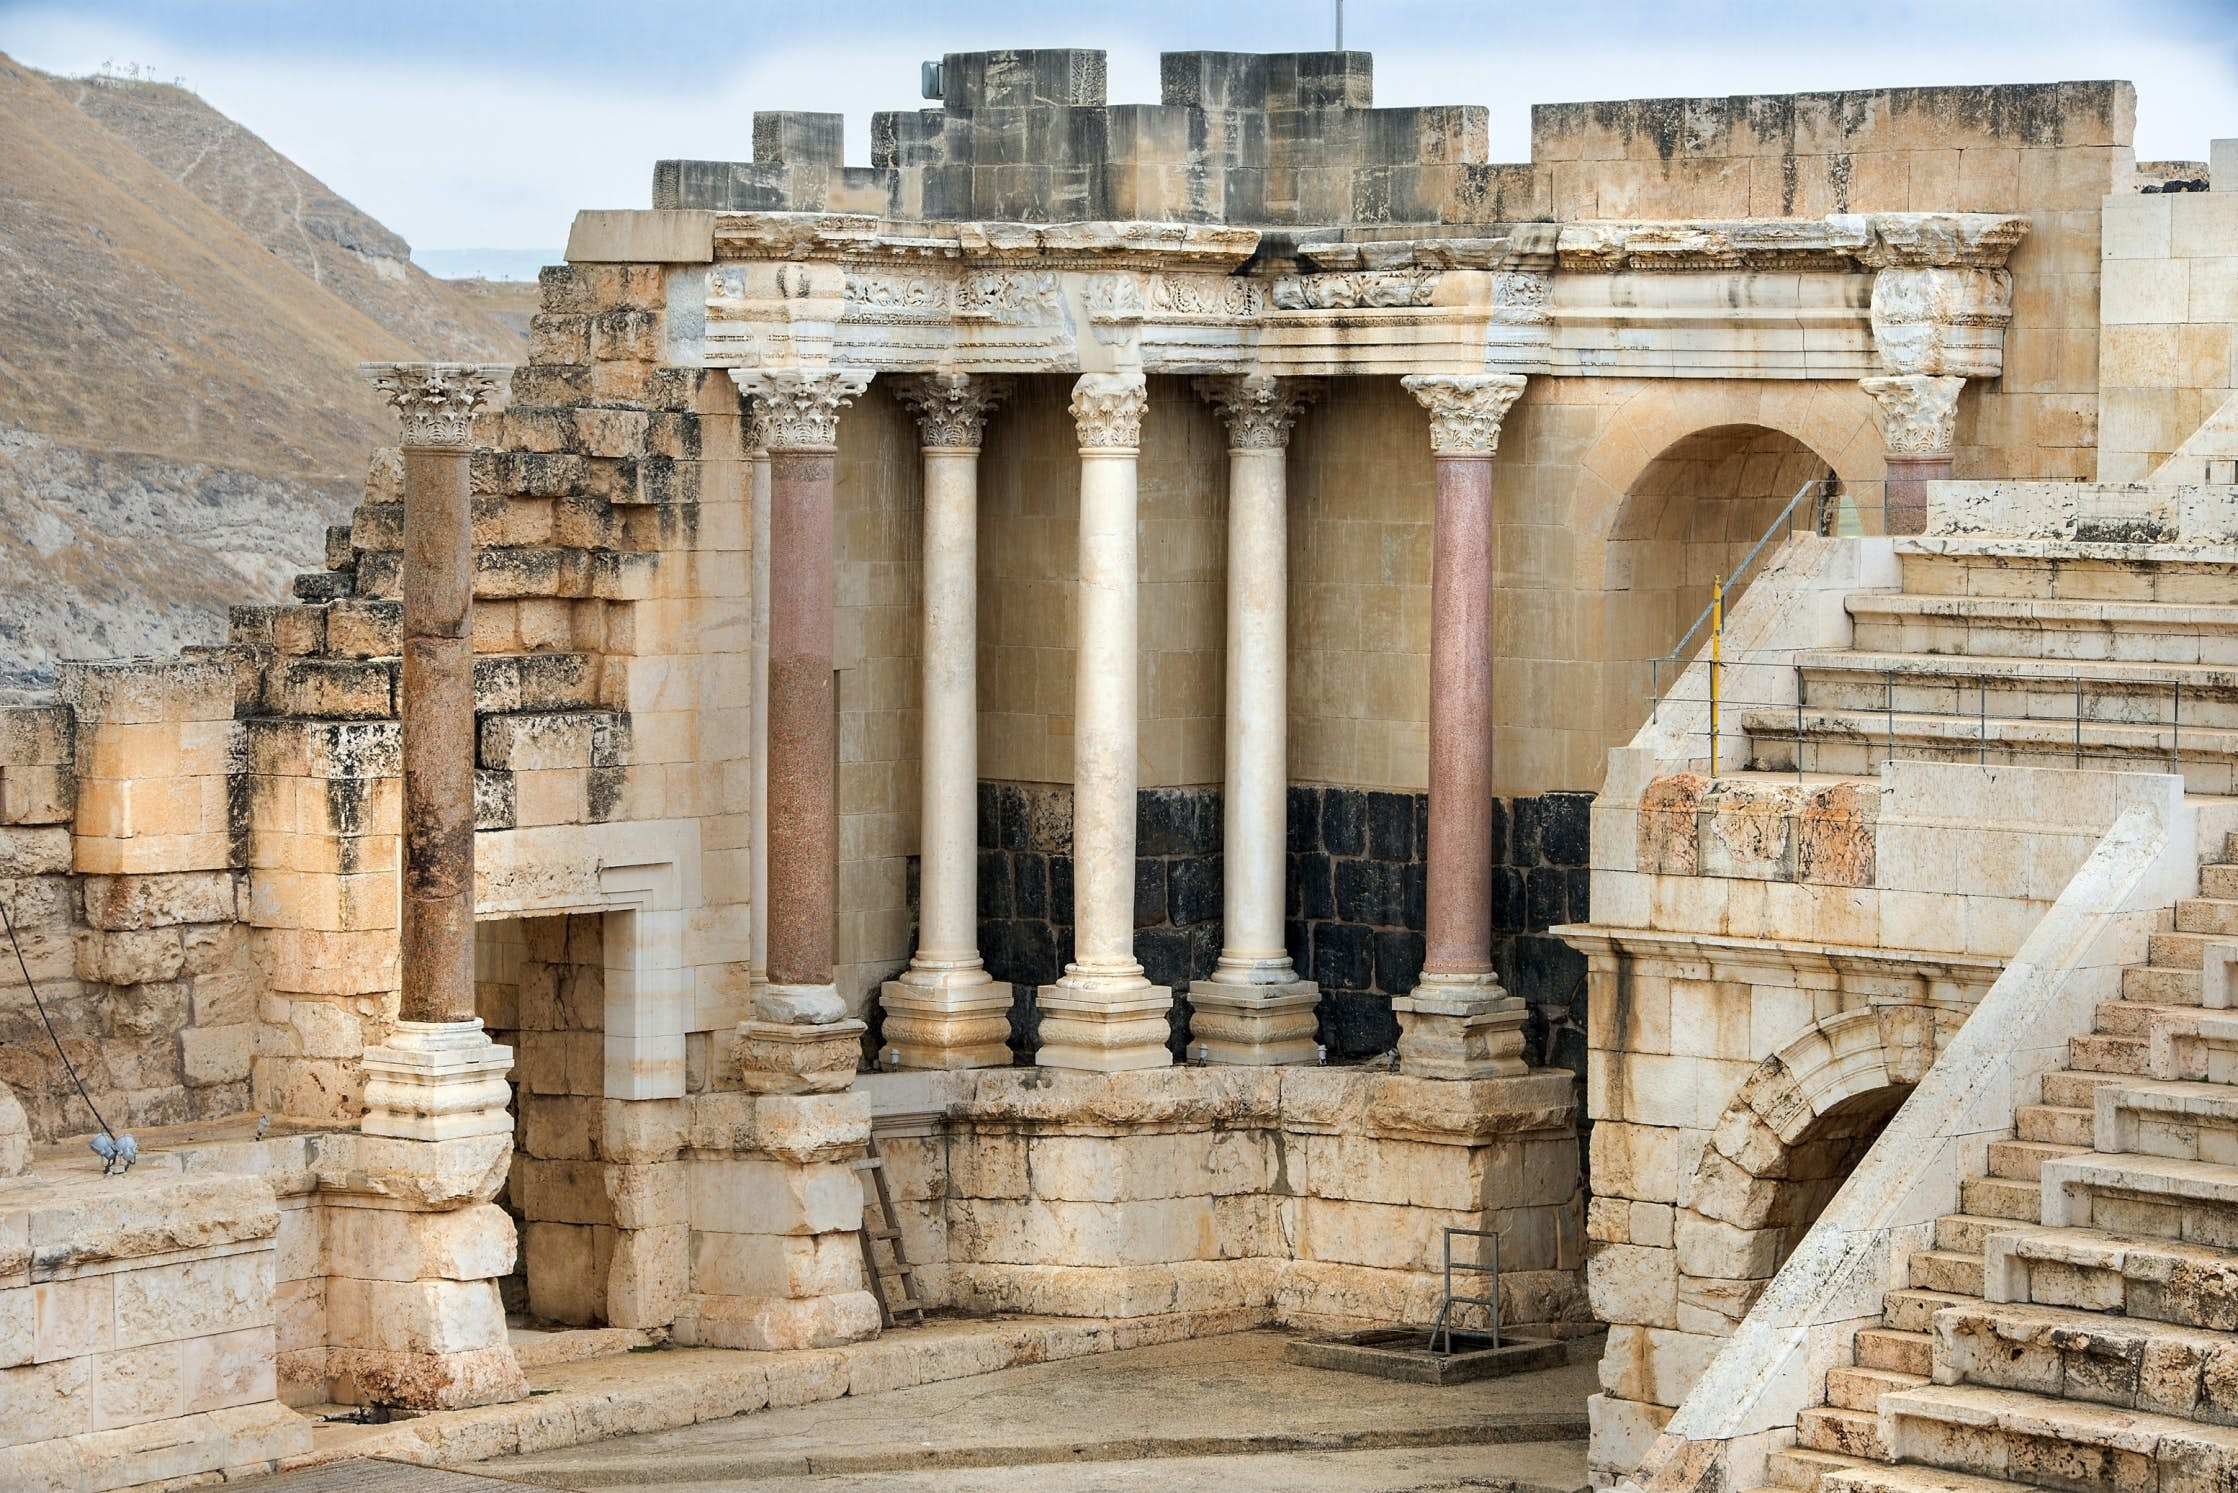 Beit She'an National Park | Beit She'an, Israel Attractions - Lonely Planet